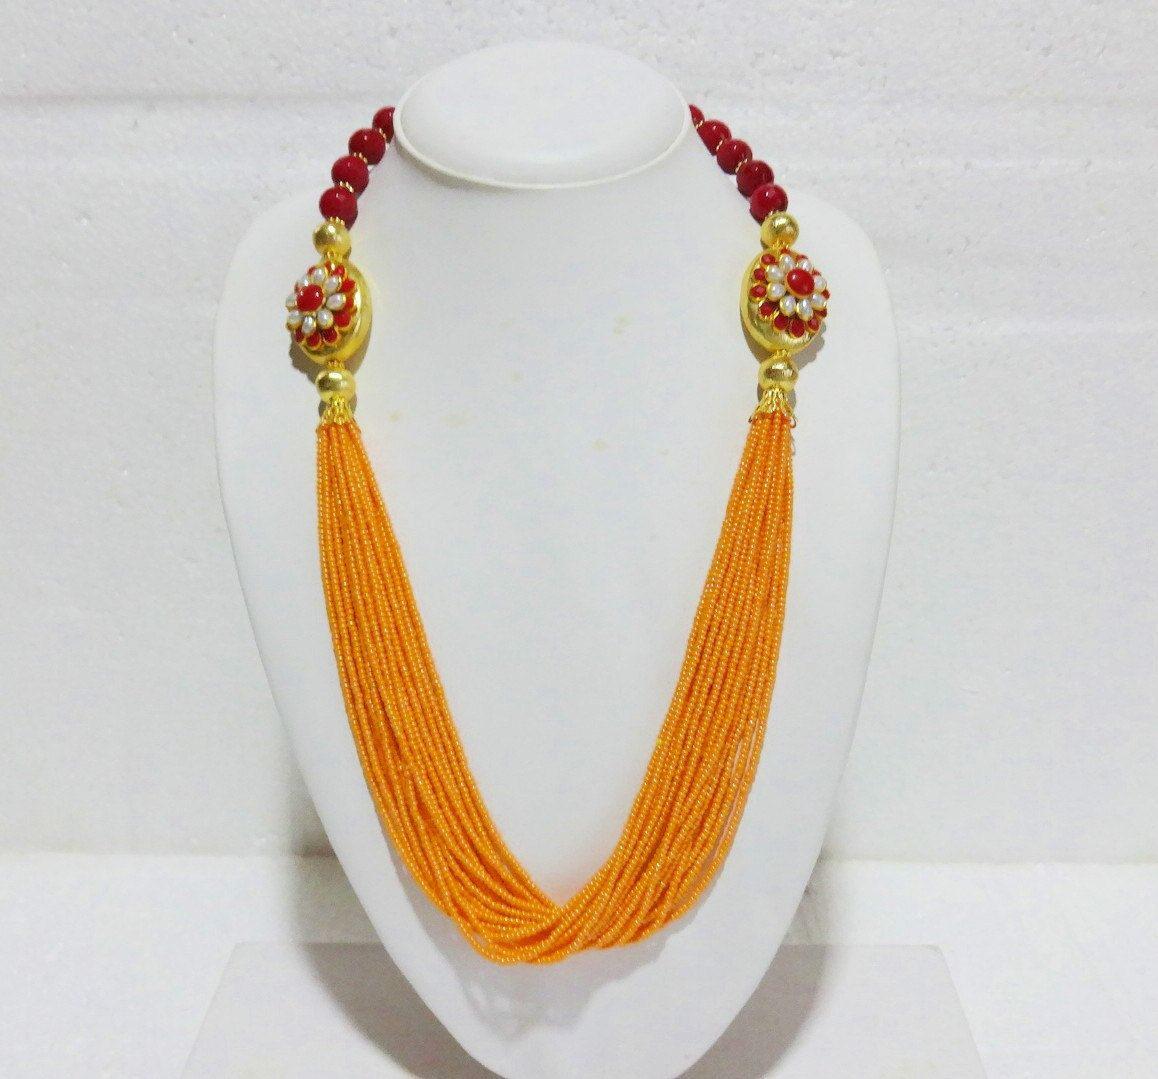 Indian Beaded Statement Necklace - Glass Beads Necklace with ...